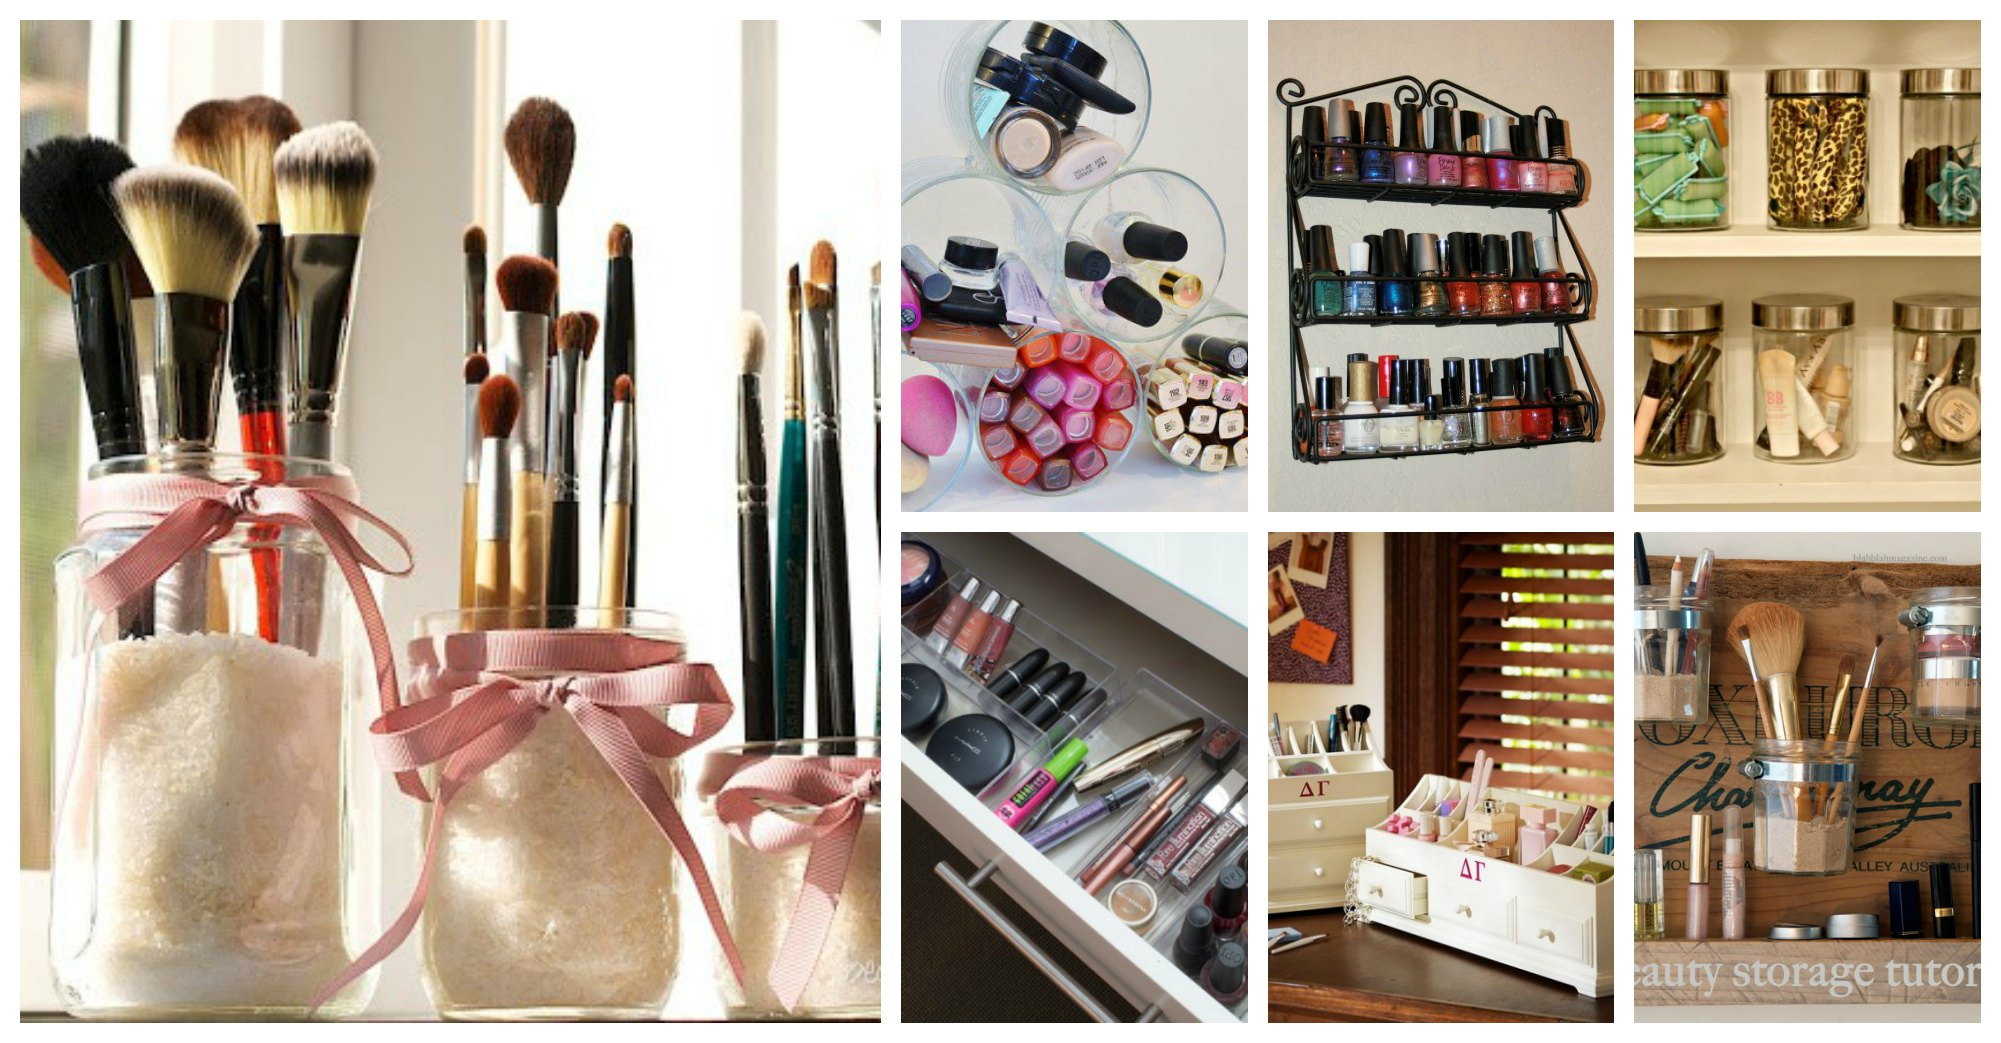 Ladies! You Won't Believe How Much Space You Have With This Storage Ideas